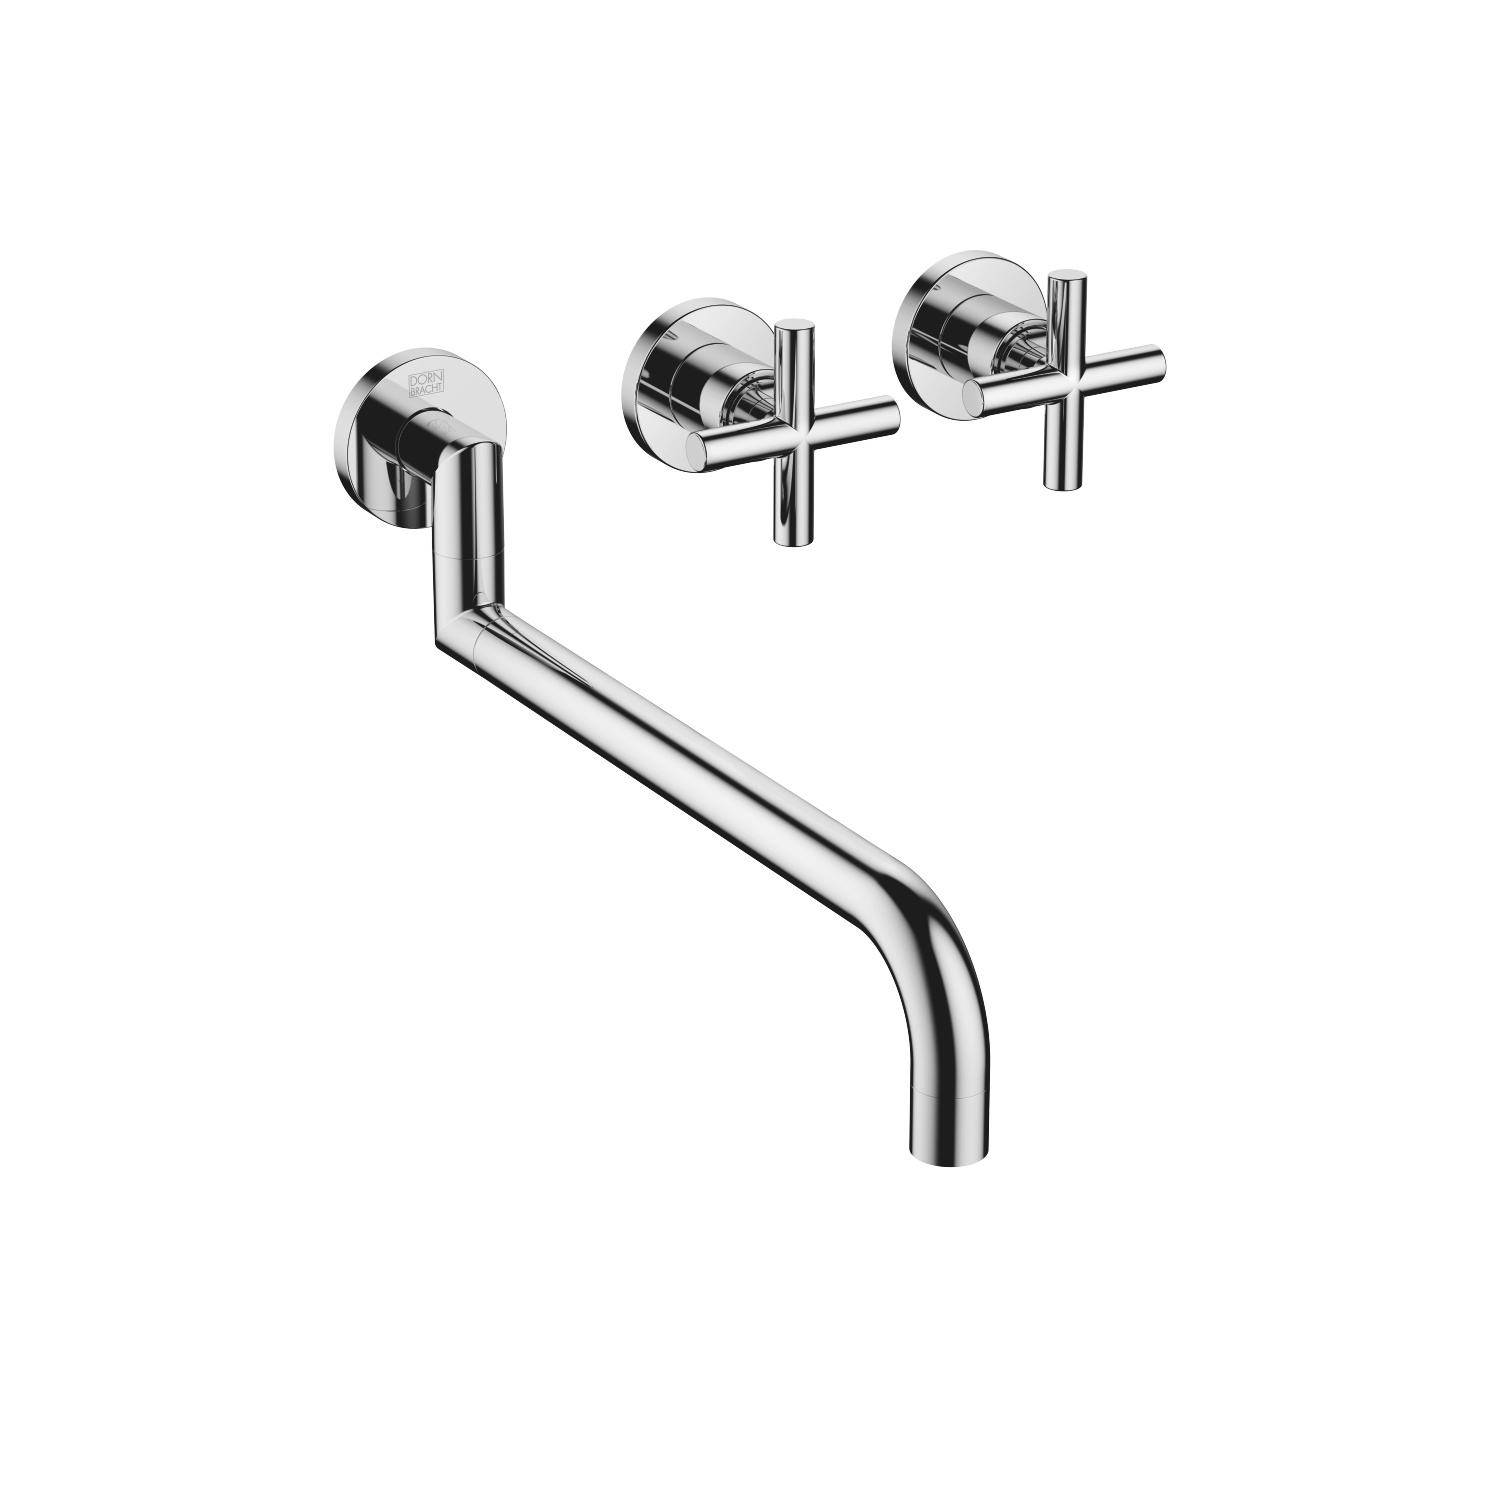 Wall-mounted sink mixer - polished chrome